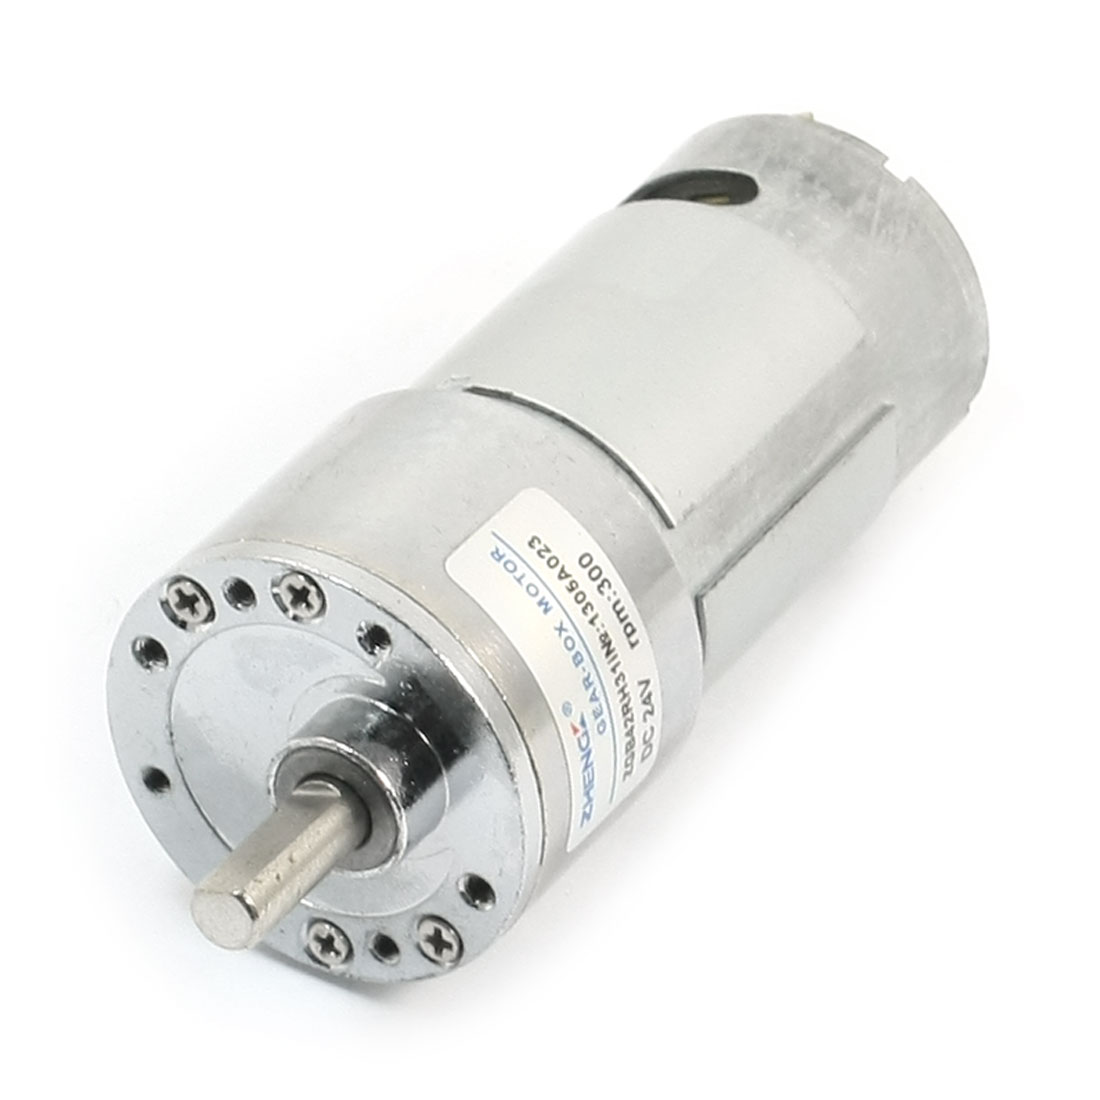 DC24V 300RPM 17x7mm Shaft Gearbox Magnetic Electric Motor Silver Tone